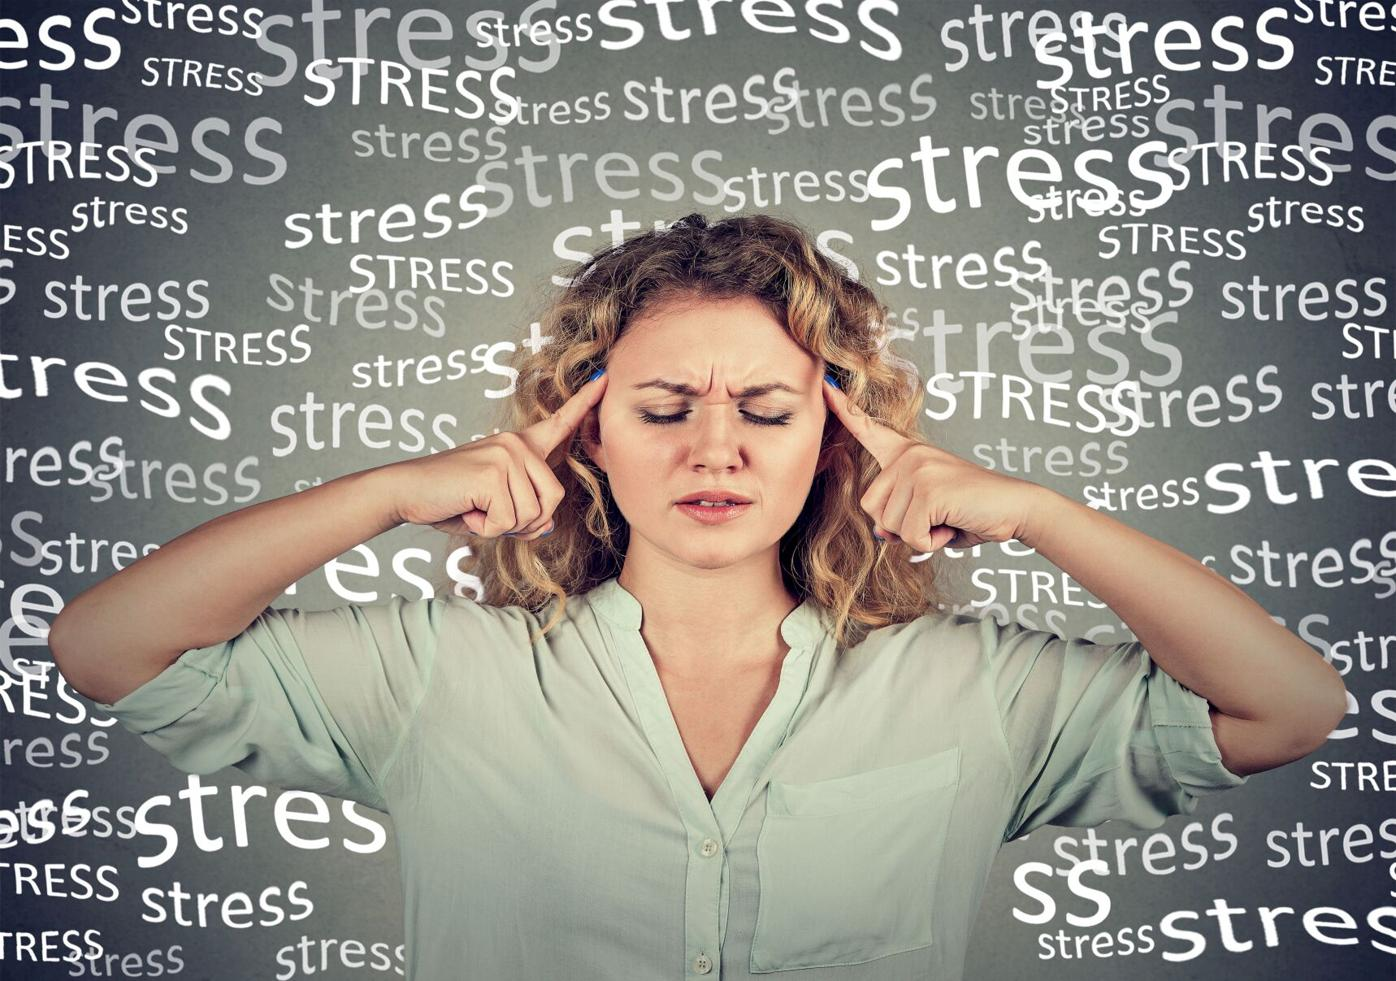 Chronic stress can wreak havoc on your mind and body